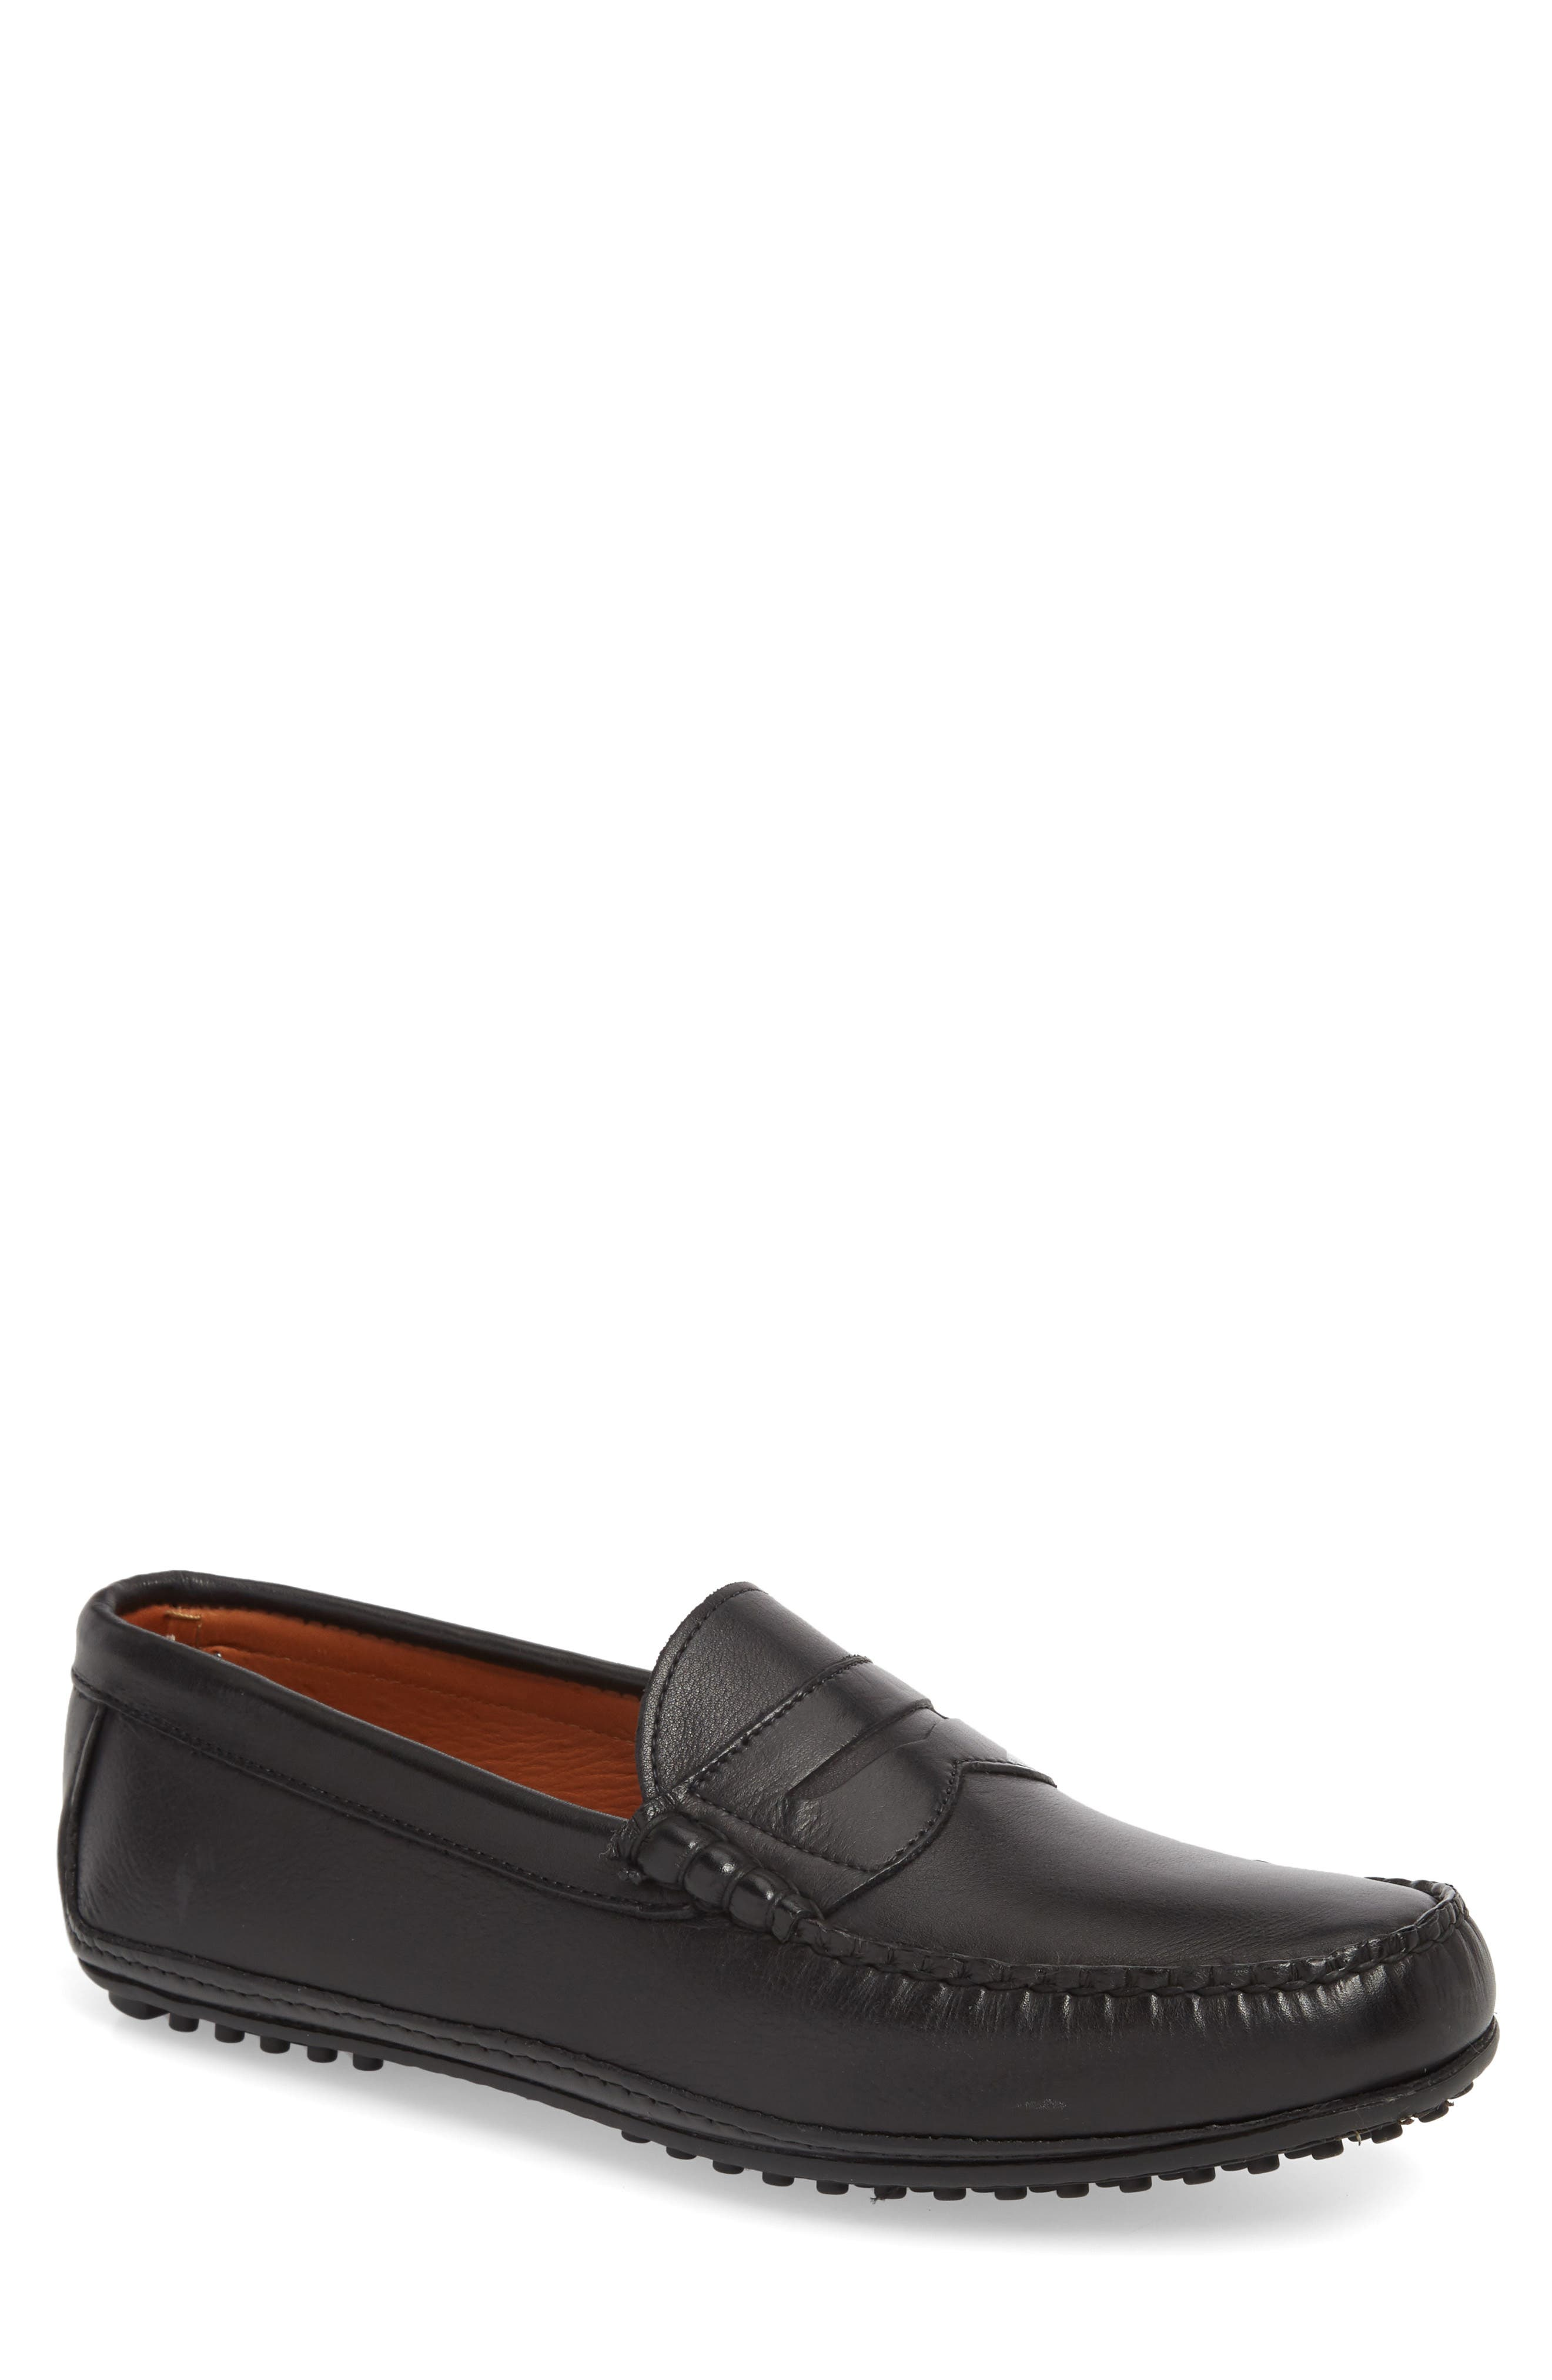 Siesta Key Penny Loafer,                             Main thumbnail 1, color,                             BLACK LEATHER